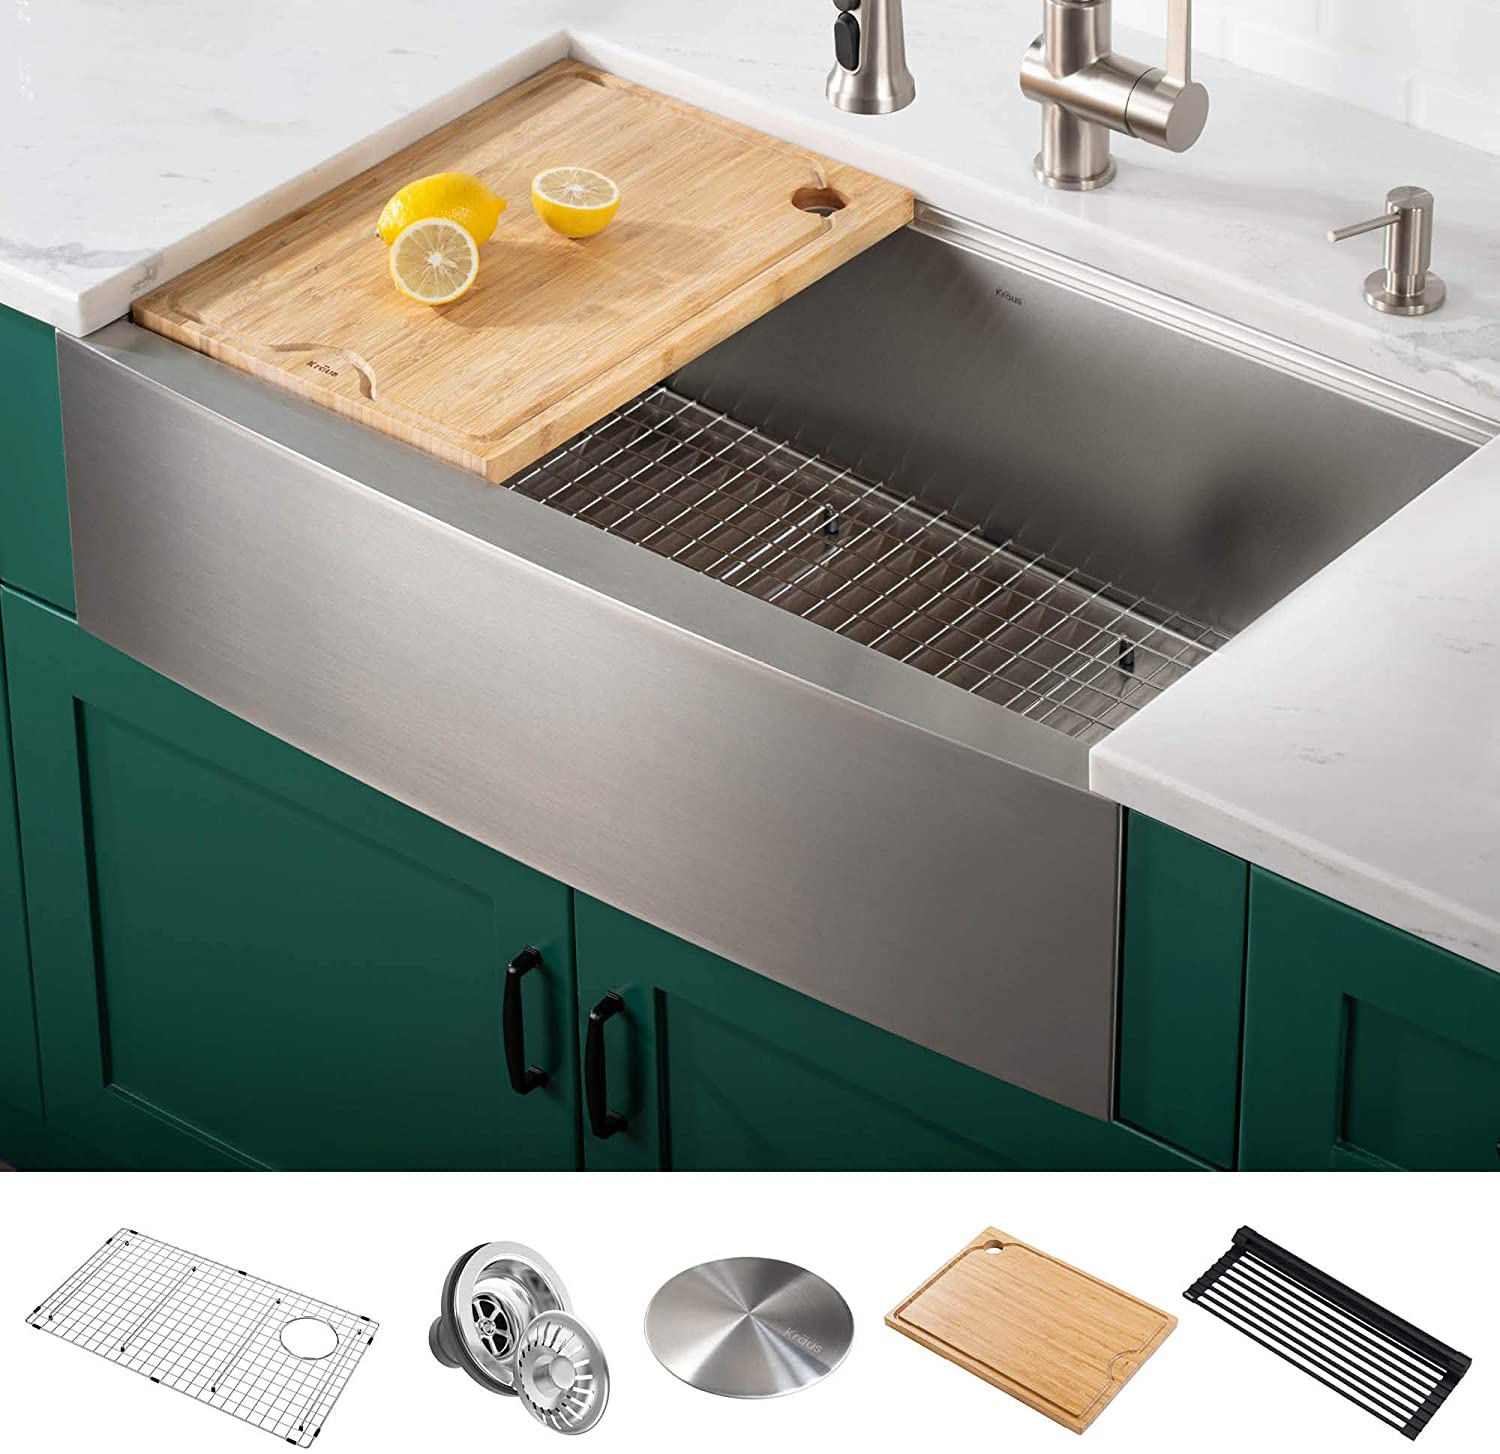 Kraus KWF210-30 Kore Workstation 16 Gauge Farmhouse Single Bowl Stainless Steel Kitchen Sink with Integrated Ledge and Accessories (Pack of 5), 30 Inch Rounded Apron Front